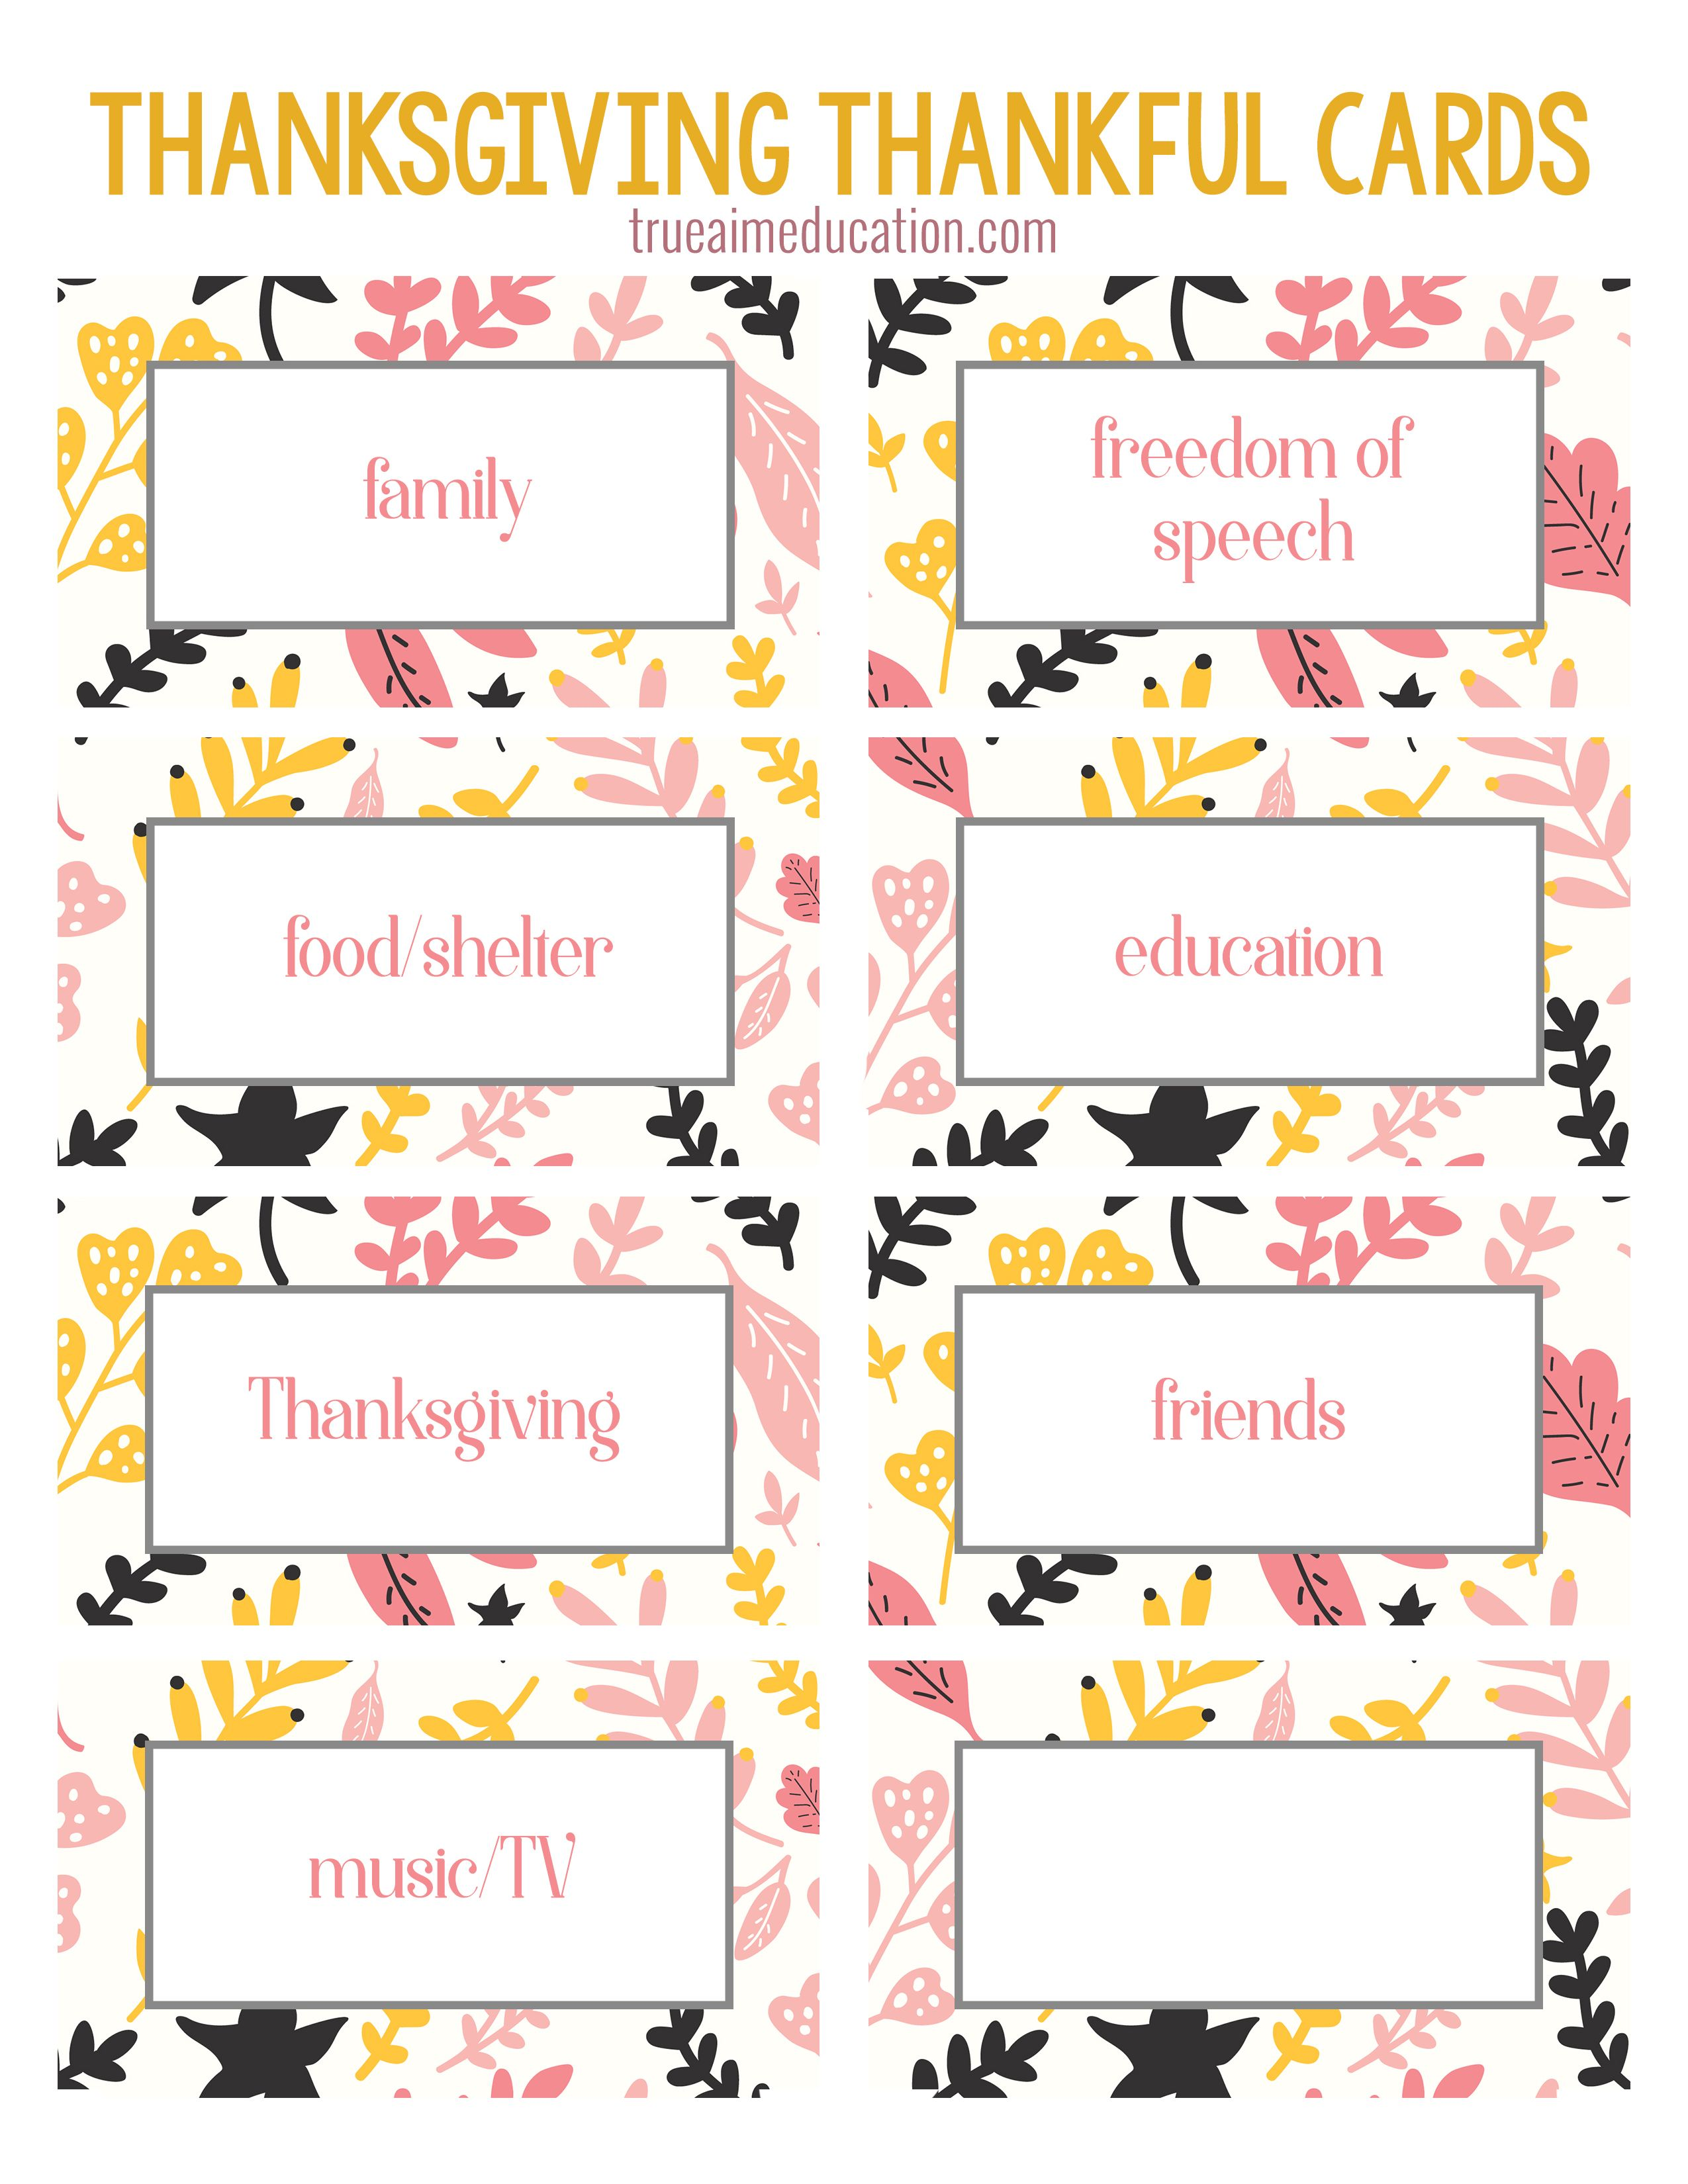 Thanksgiving Thankfulness With Free Printable Cards